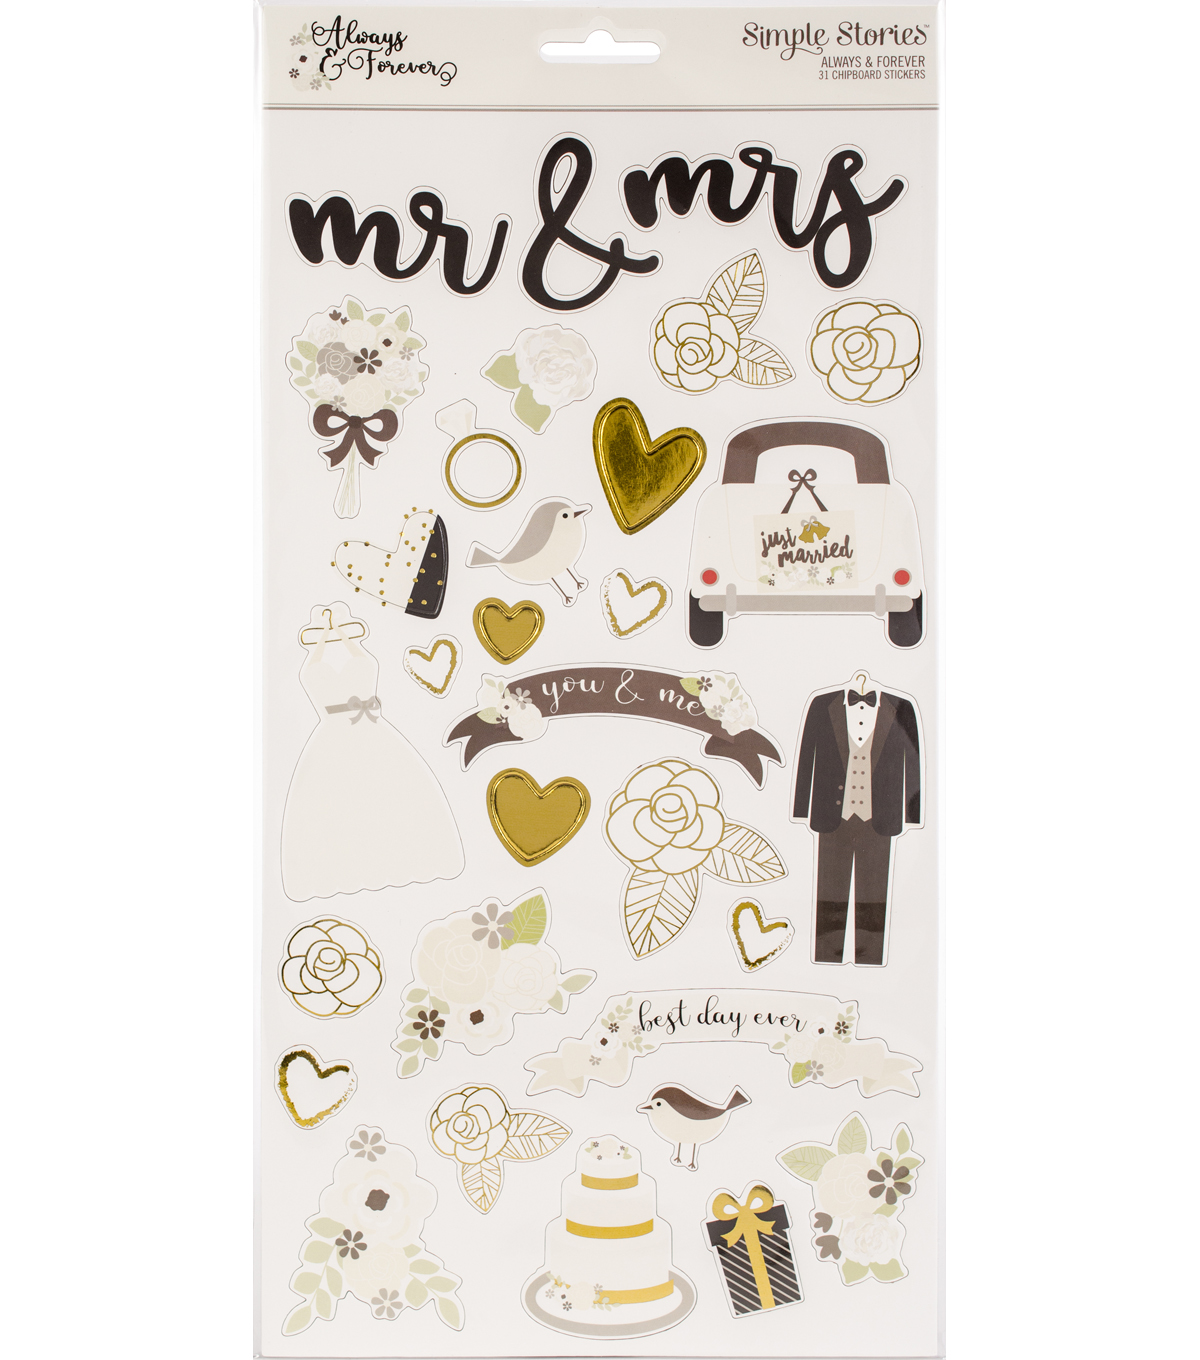 Simple Stories Always & Forever 31 pk Chipboard Stickers with Gold Foil